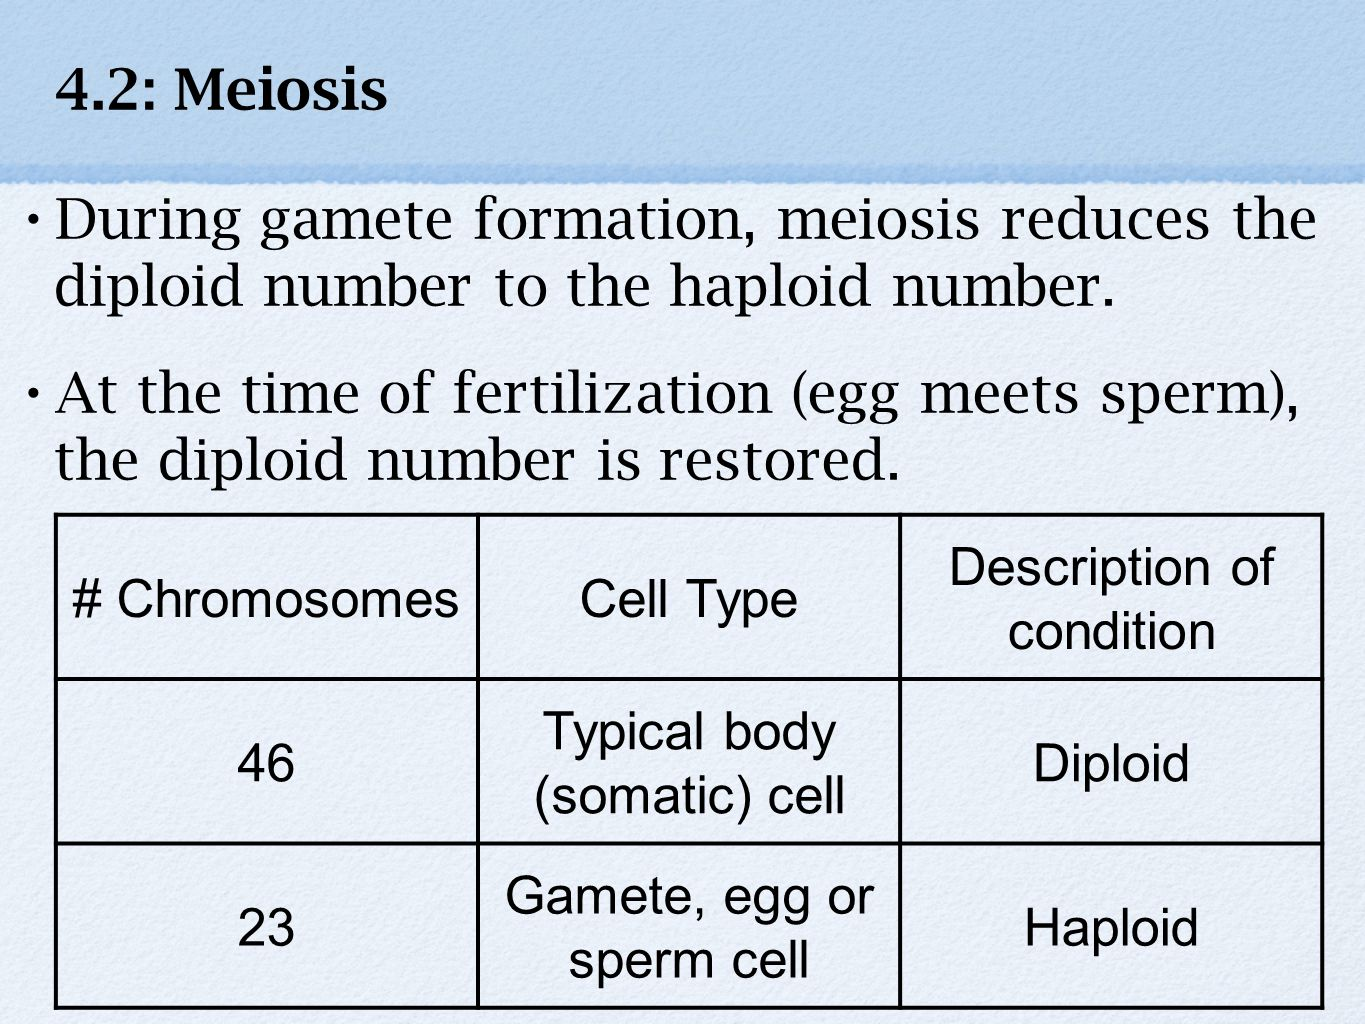 During gamete formation, meiosis reduces the diploid number to the haploid number.